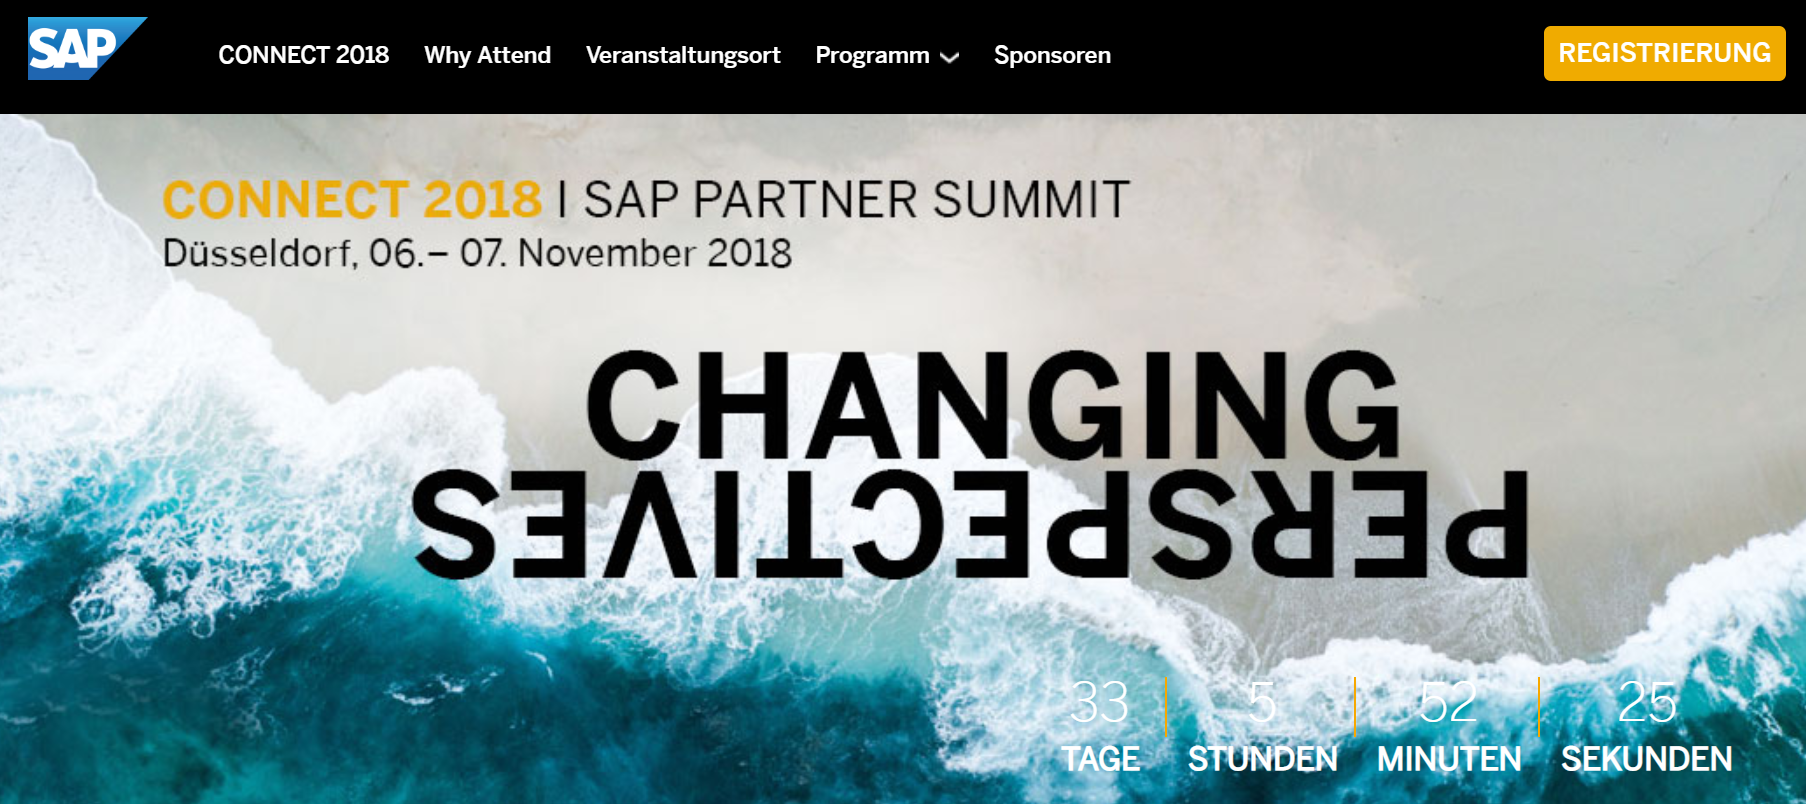 sap_connect